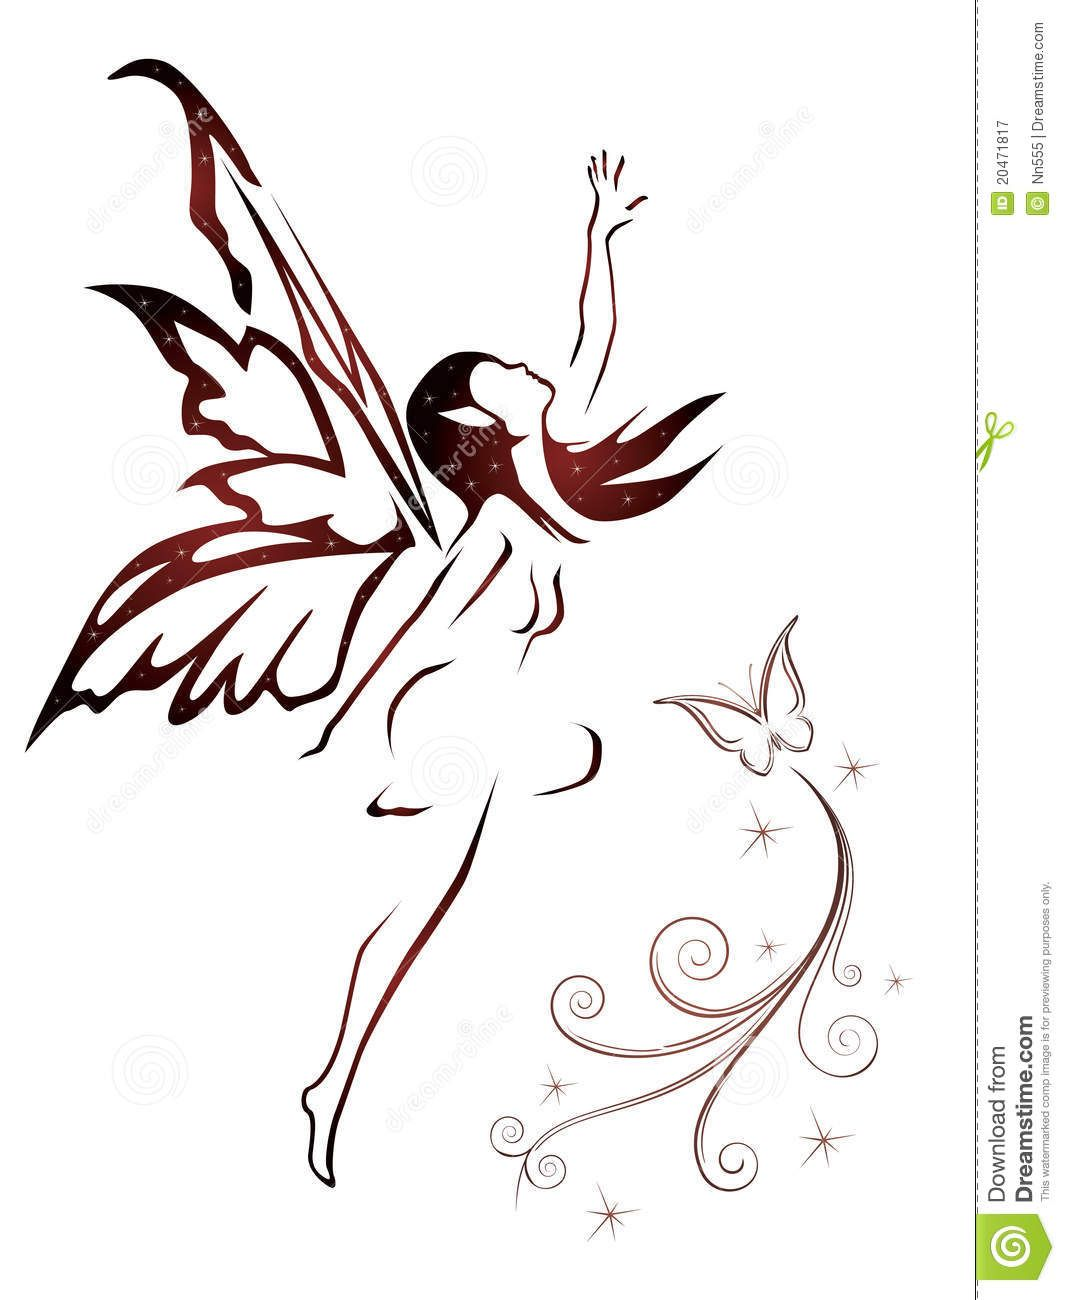 Fairies clipart body. Pin by jovanna on